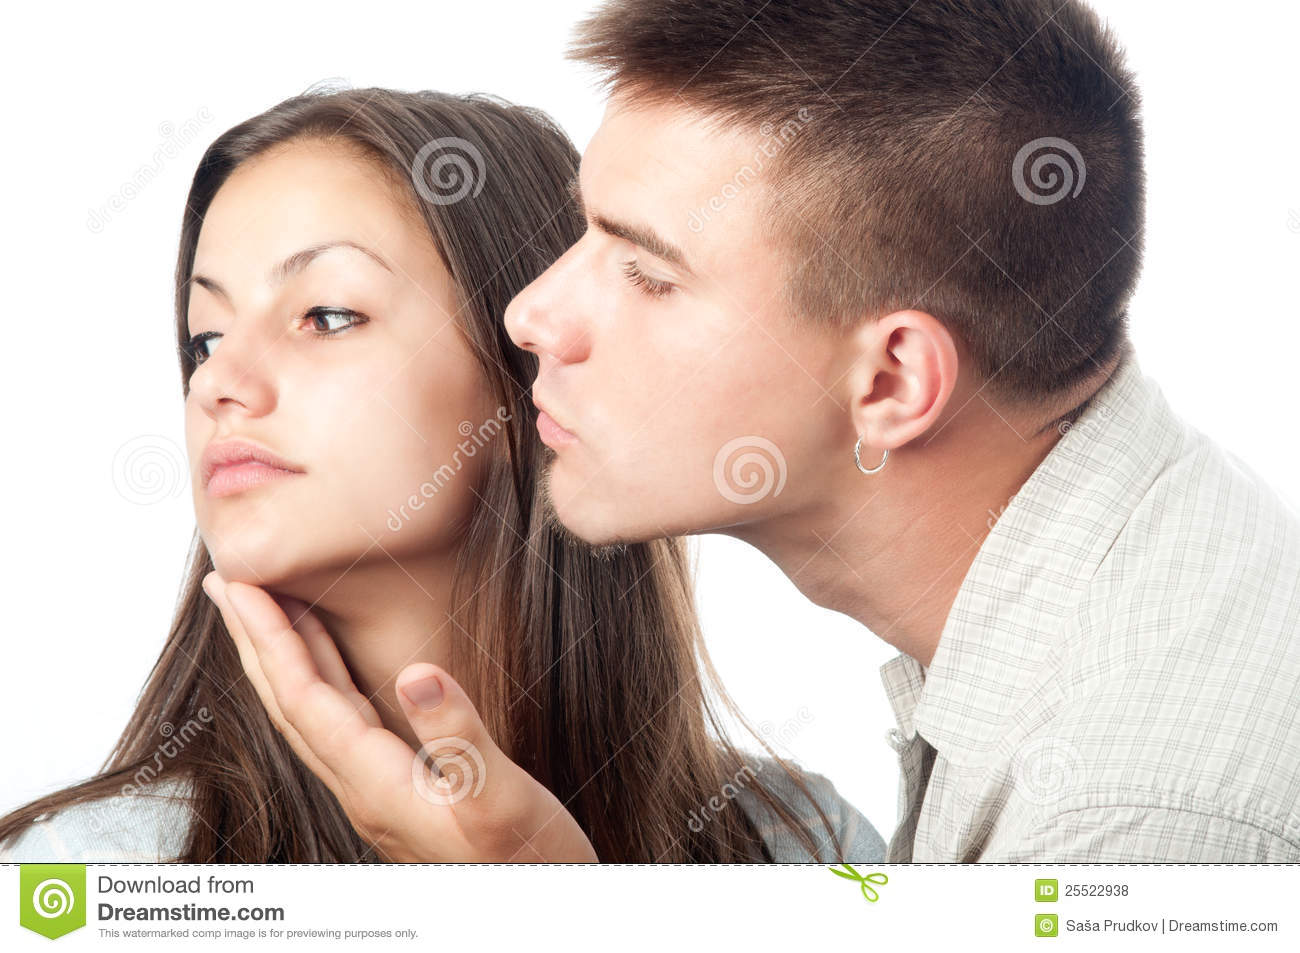 10 998 Angry Boyfriend Photos Free Royalty Free Stock Photos From Dreamstime